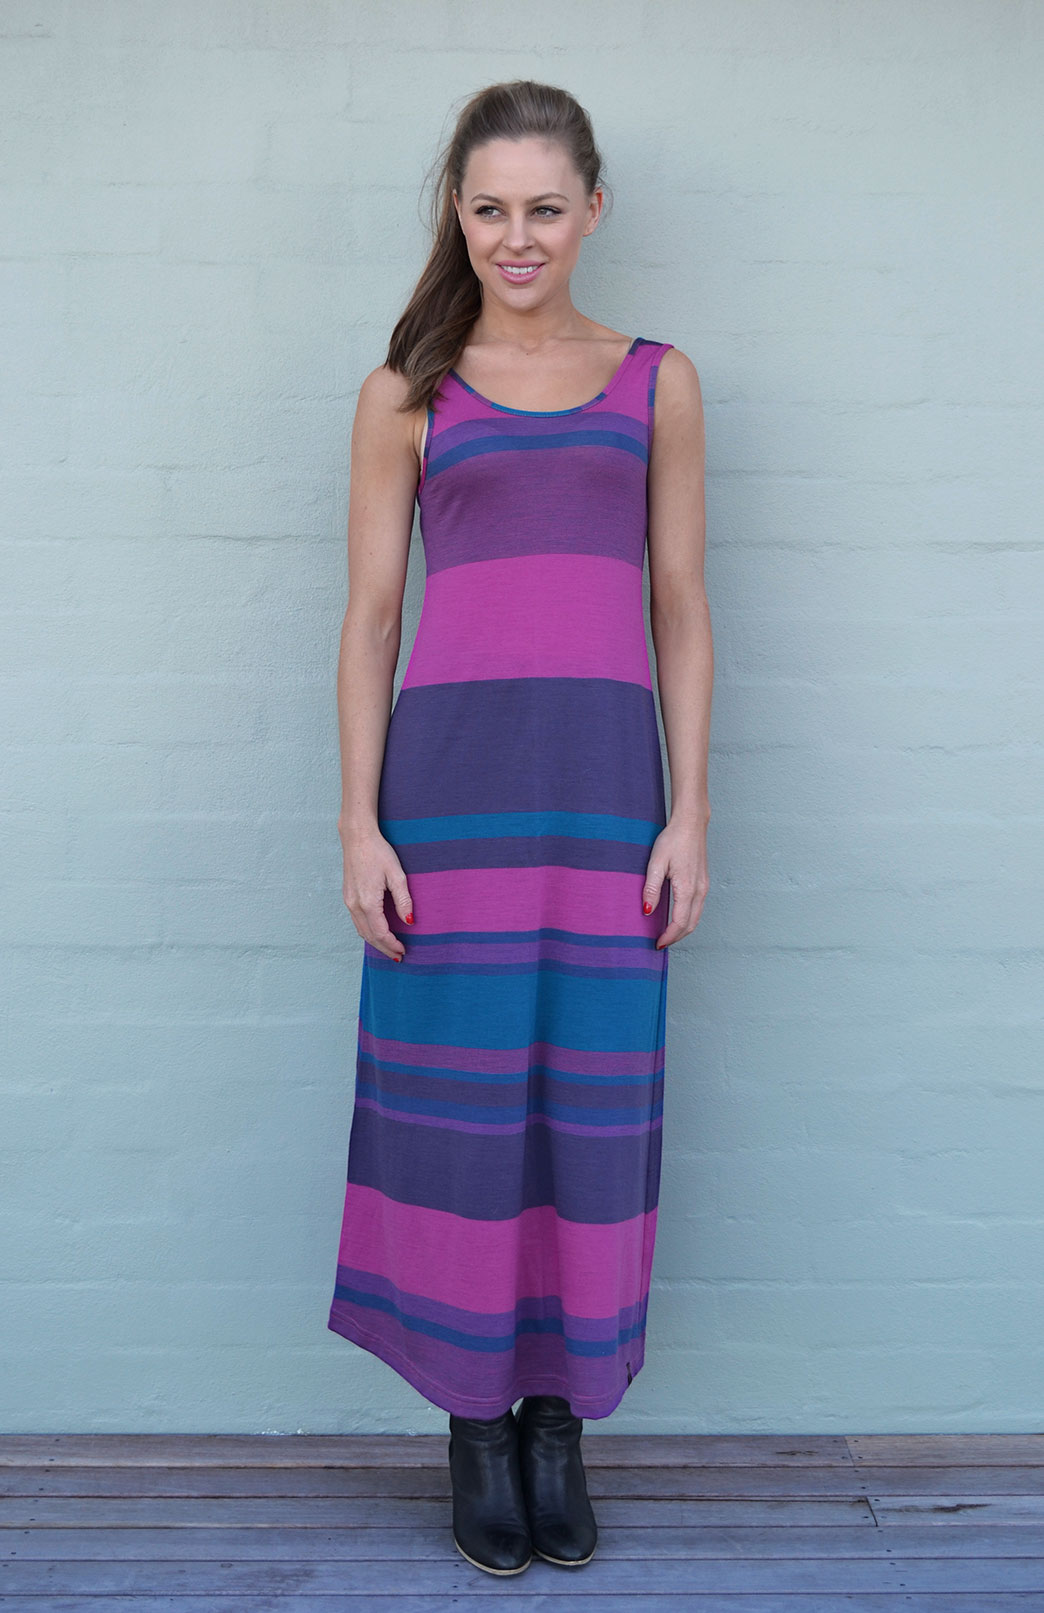 Maxi Dress - Multi Striped - Women's Merino Wool Pink and Purple Multi Striped Maxi Dress with Scoop Neckline - Smitten Merino Tasmania Australia